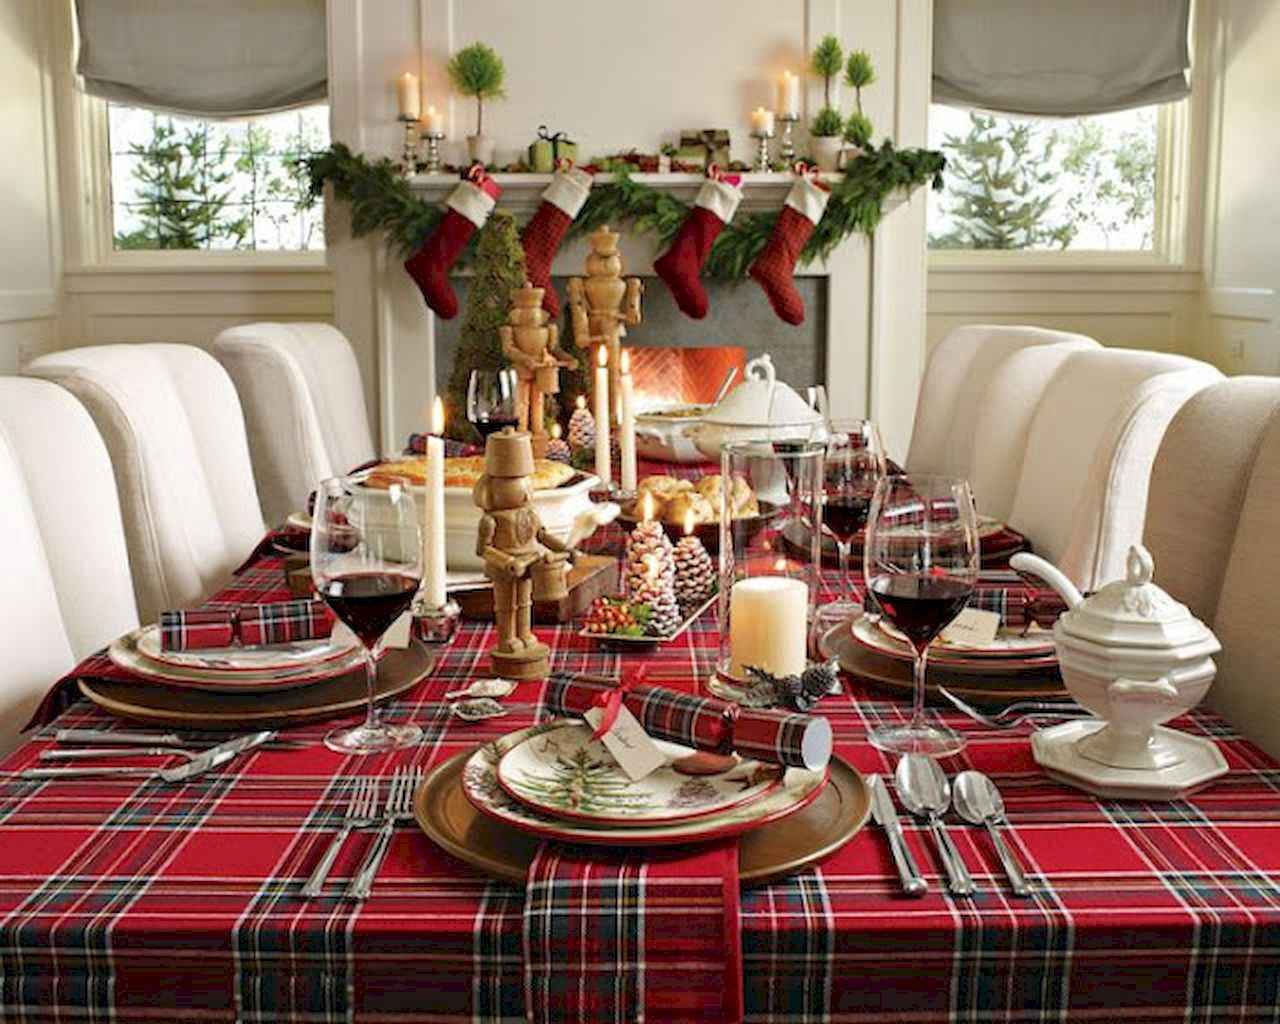 40 Awesome Christmas Dinner Table Decorations Ideas 6